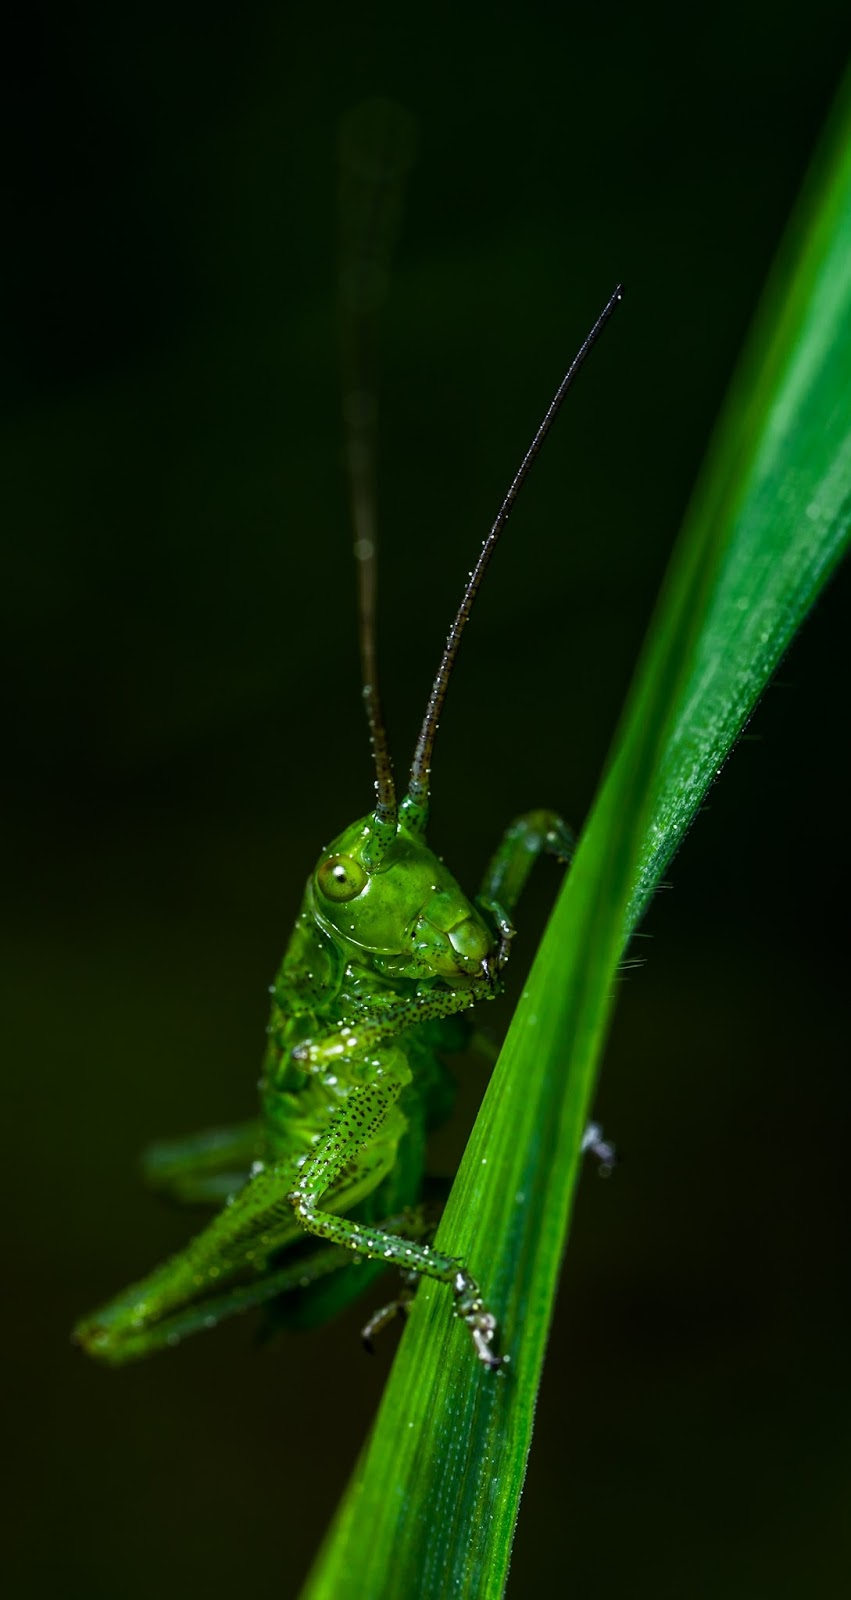 Picture of a green grasshopper.